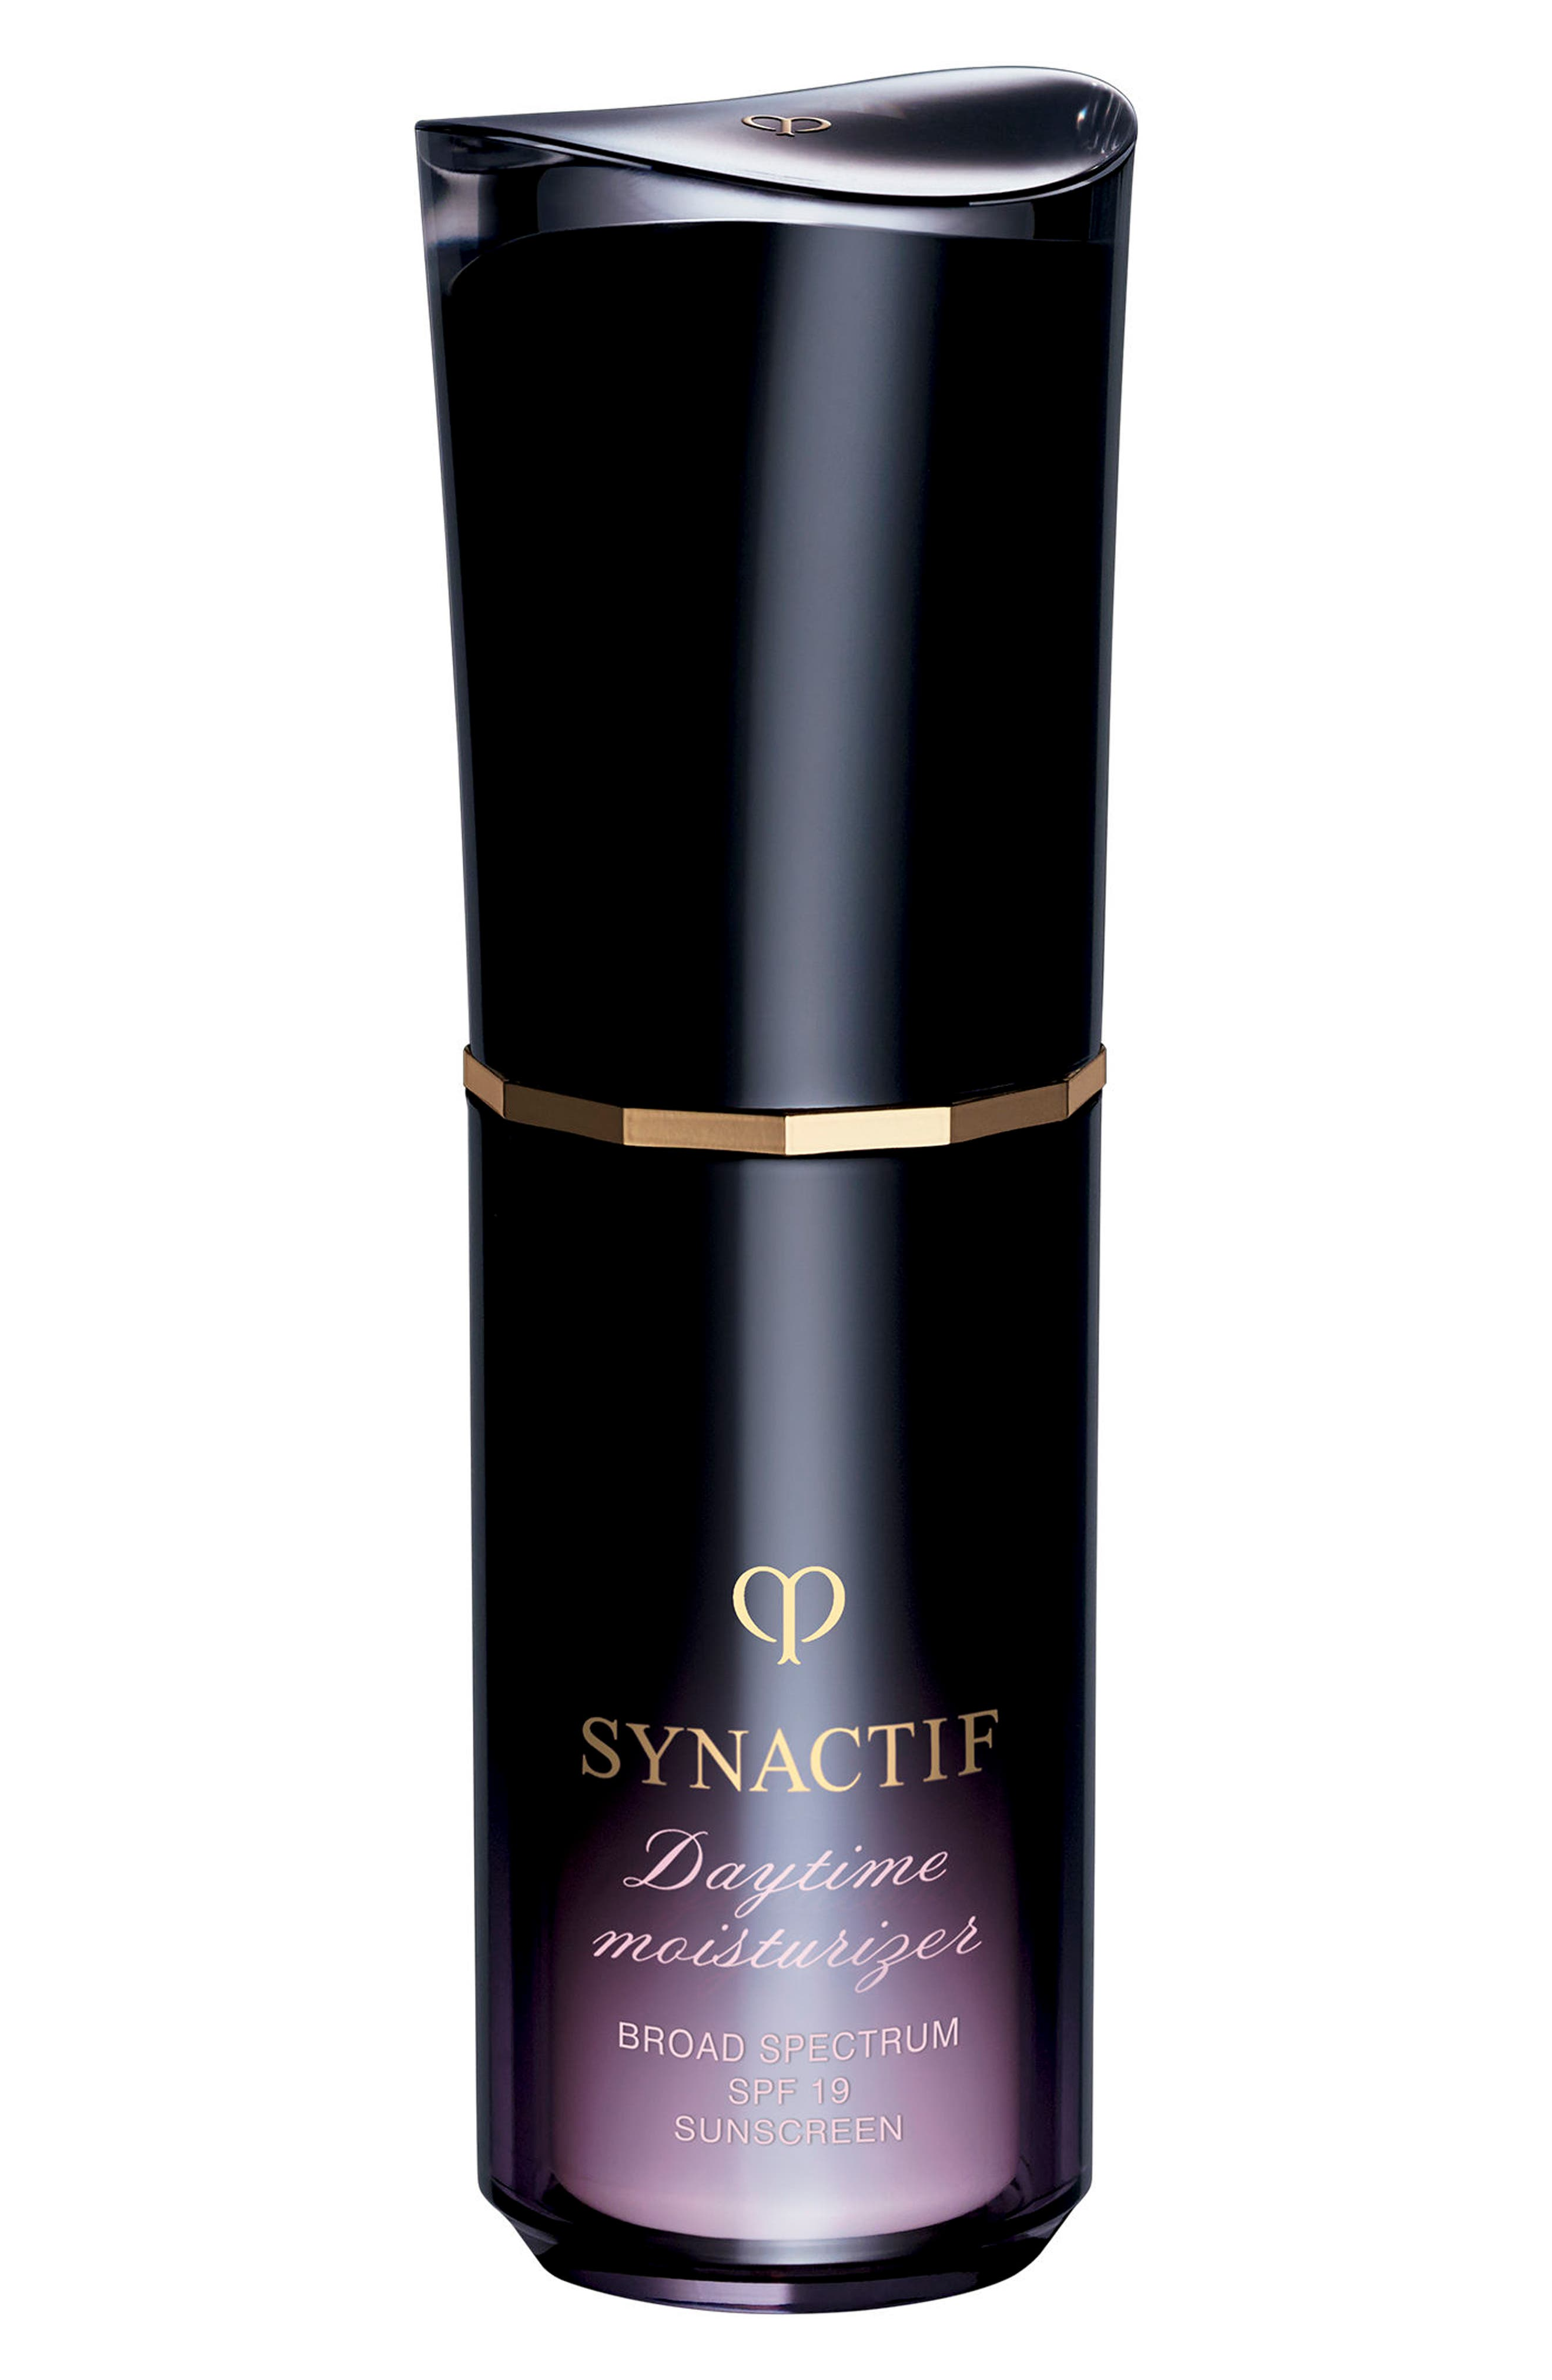 'Synactif' Daytime Moisturizer Broad Spectrum SPF 19 Sunscreen,                             Main thumbnail 1, color,                             NO COLOR